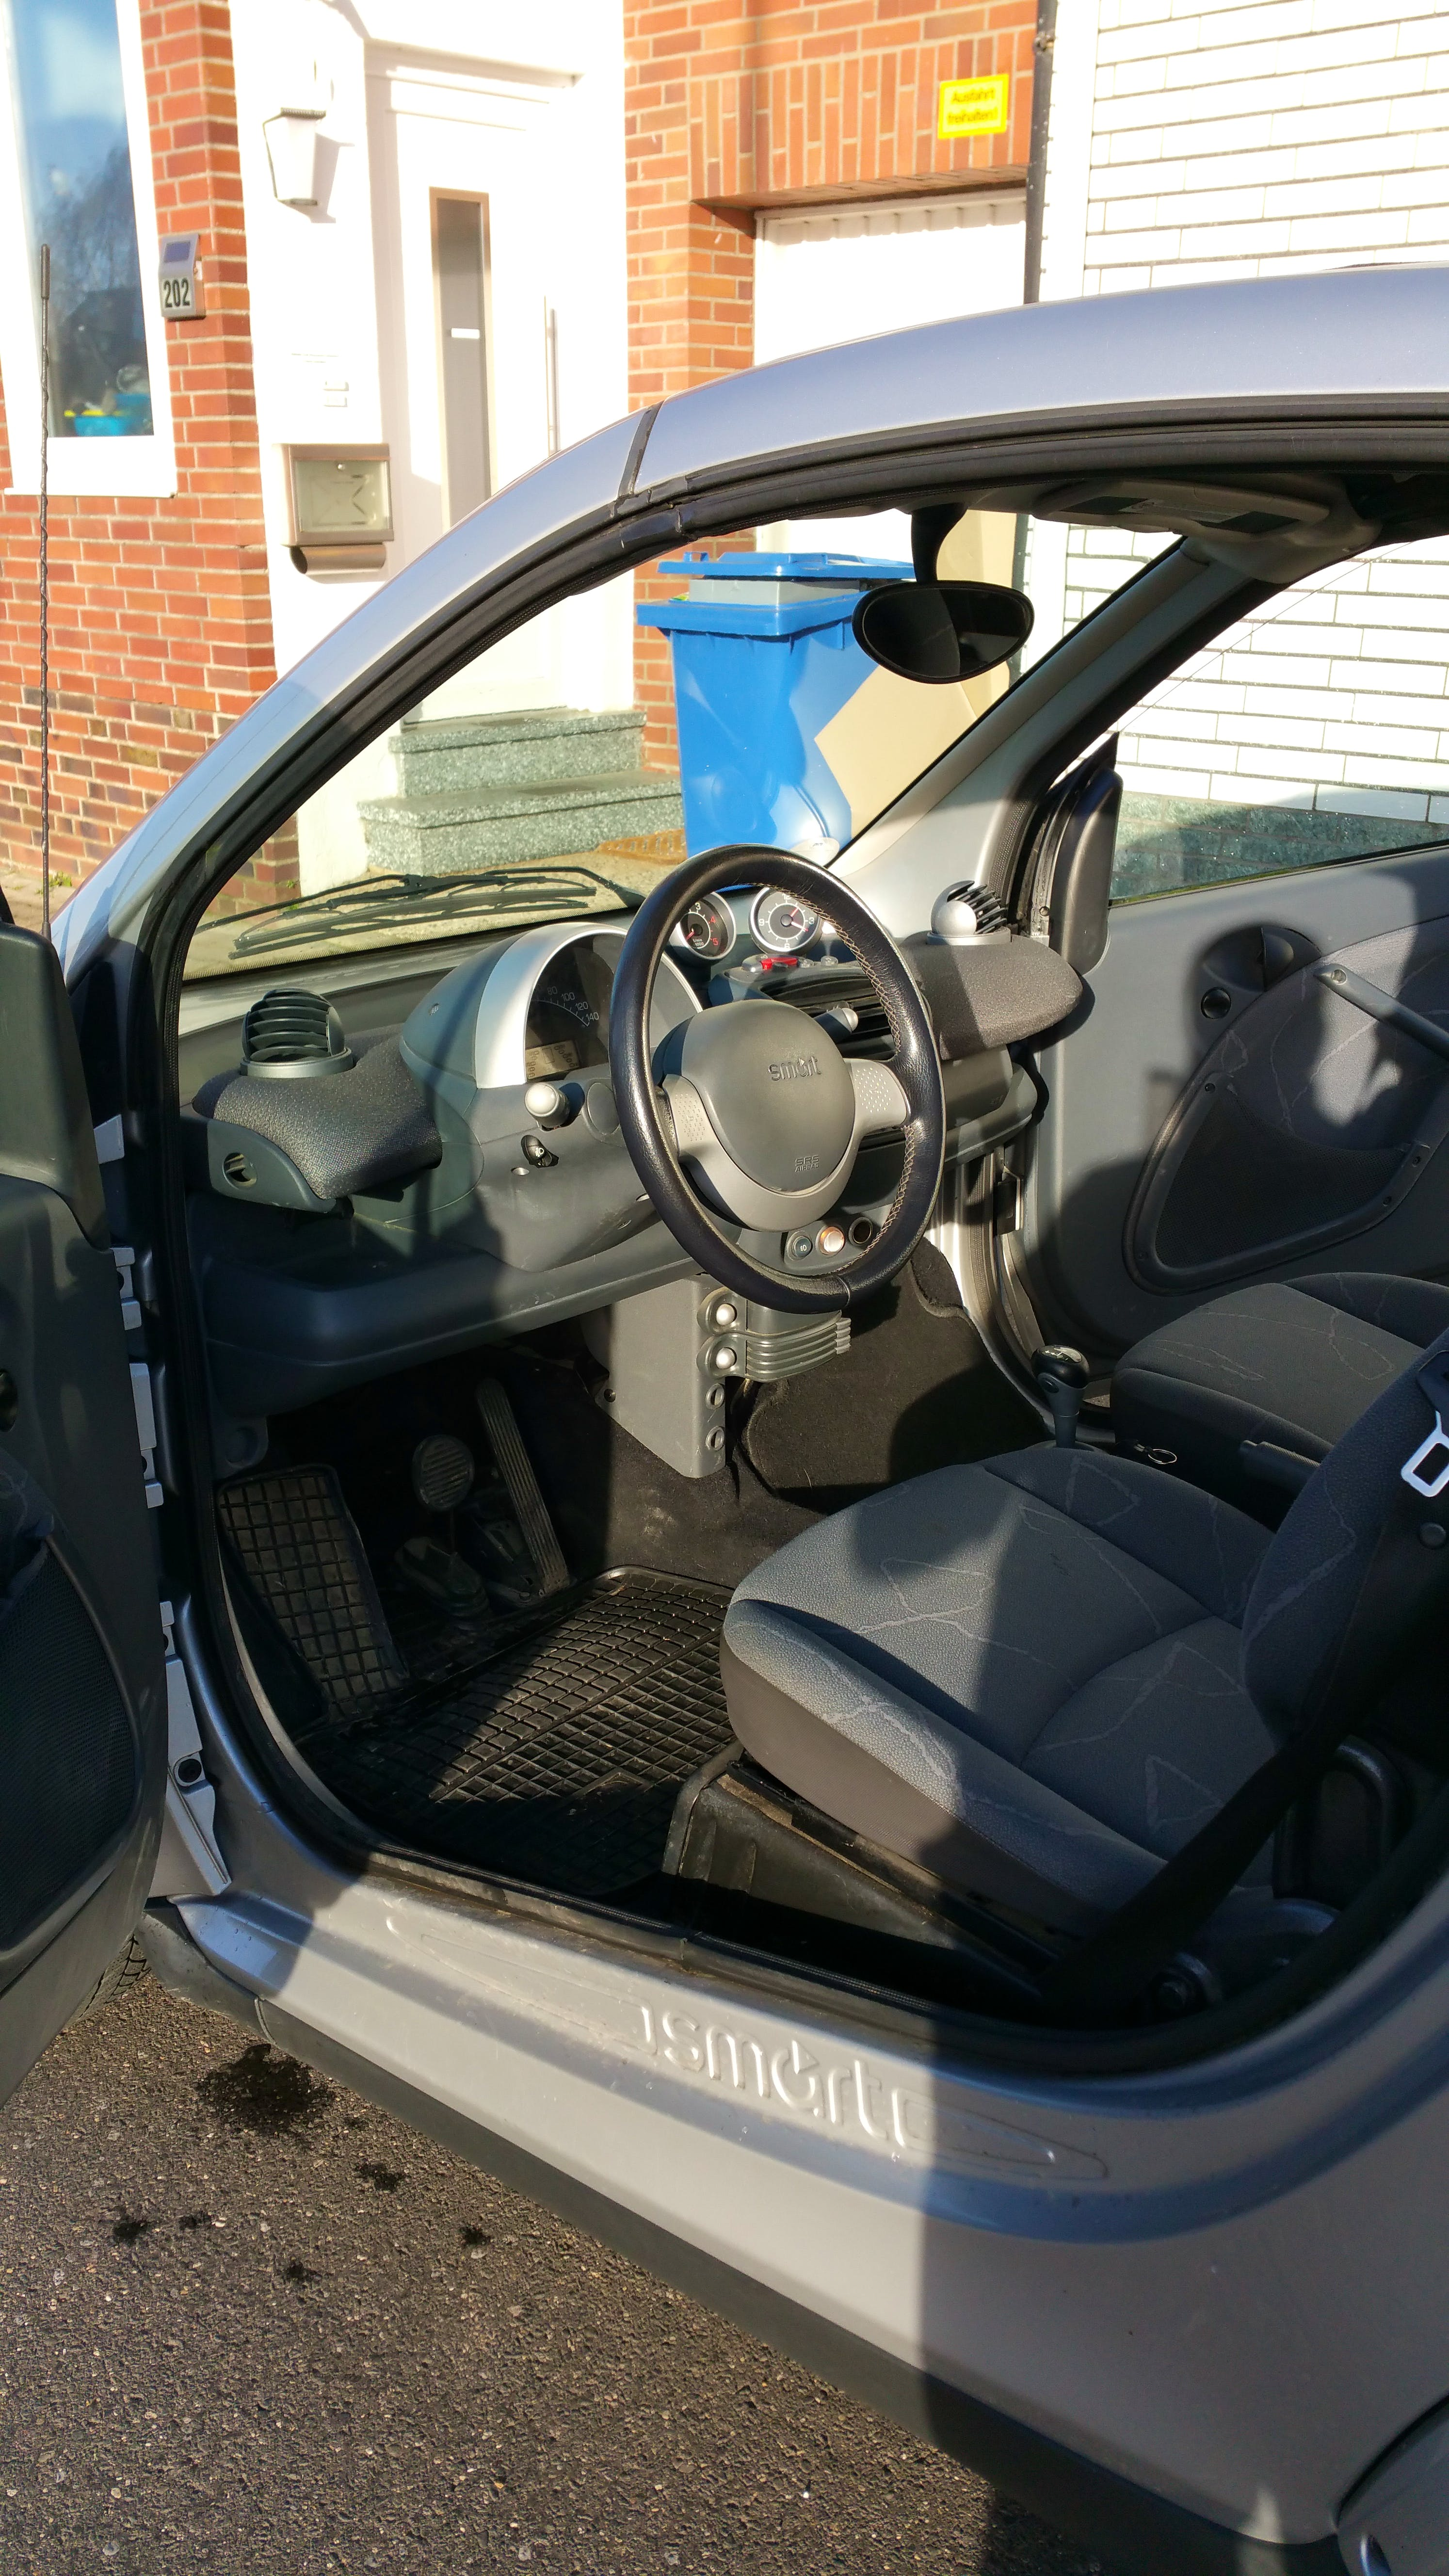 Smart Fortwo Cabriolet 0,8 cdi mit CD-Player